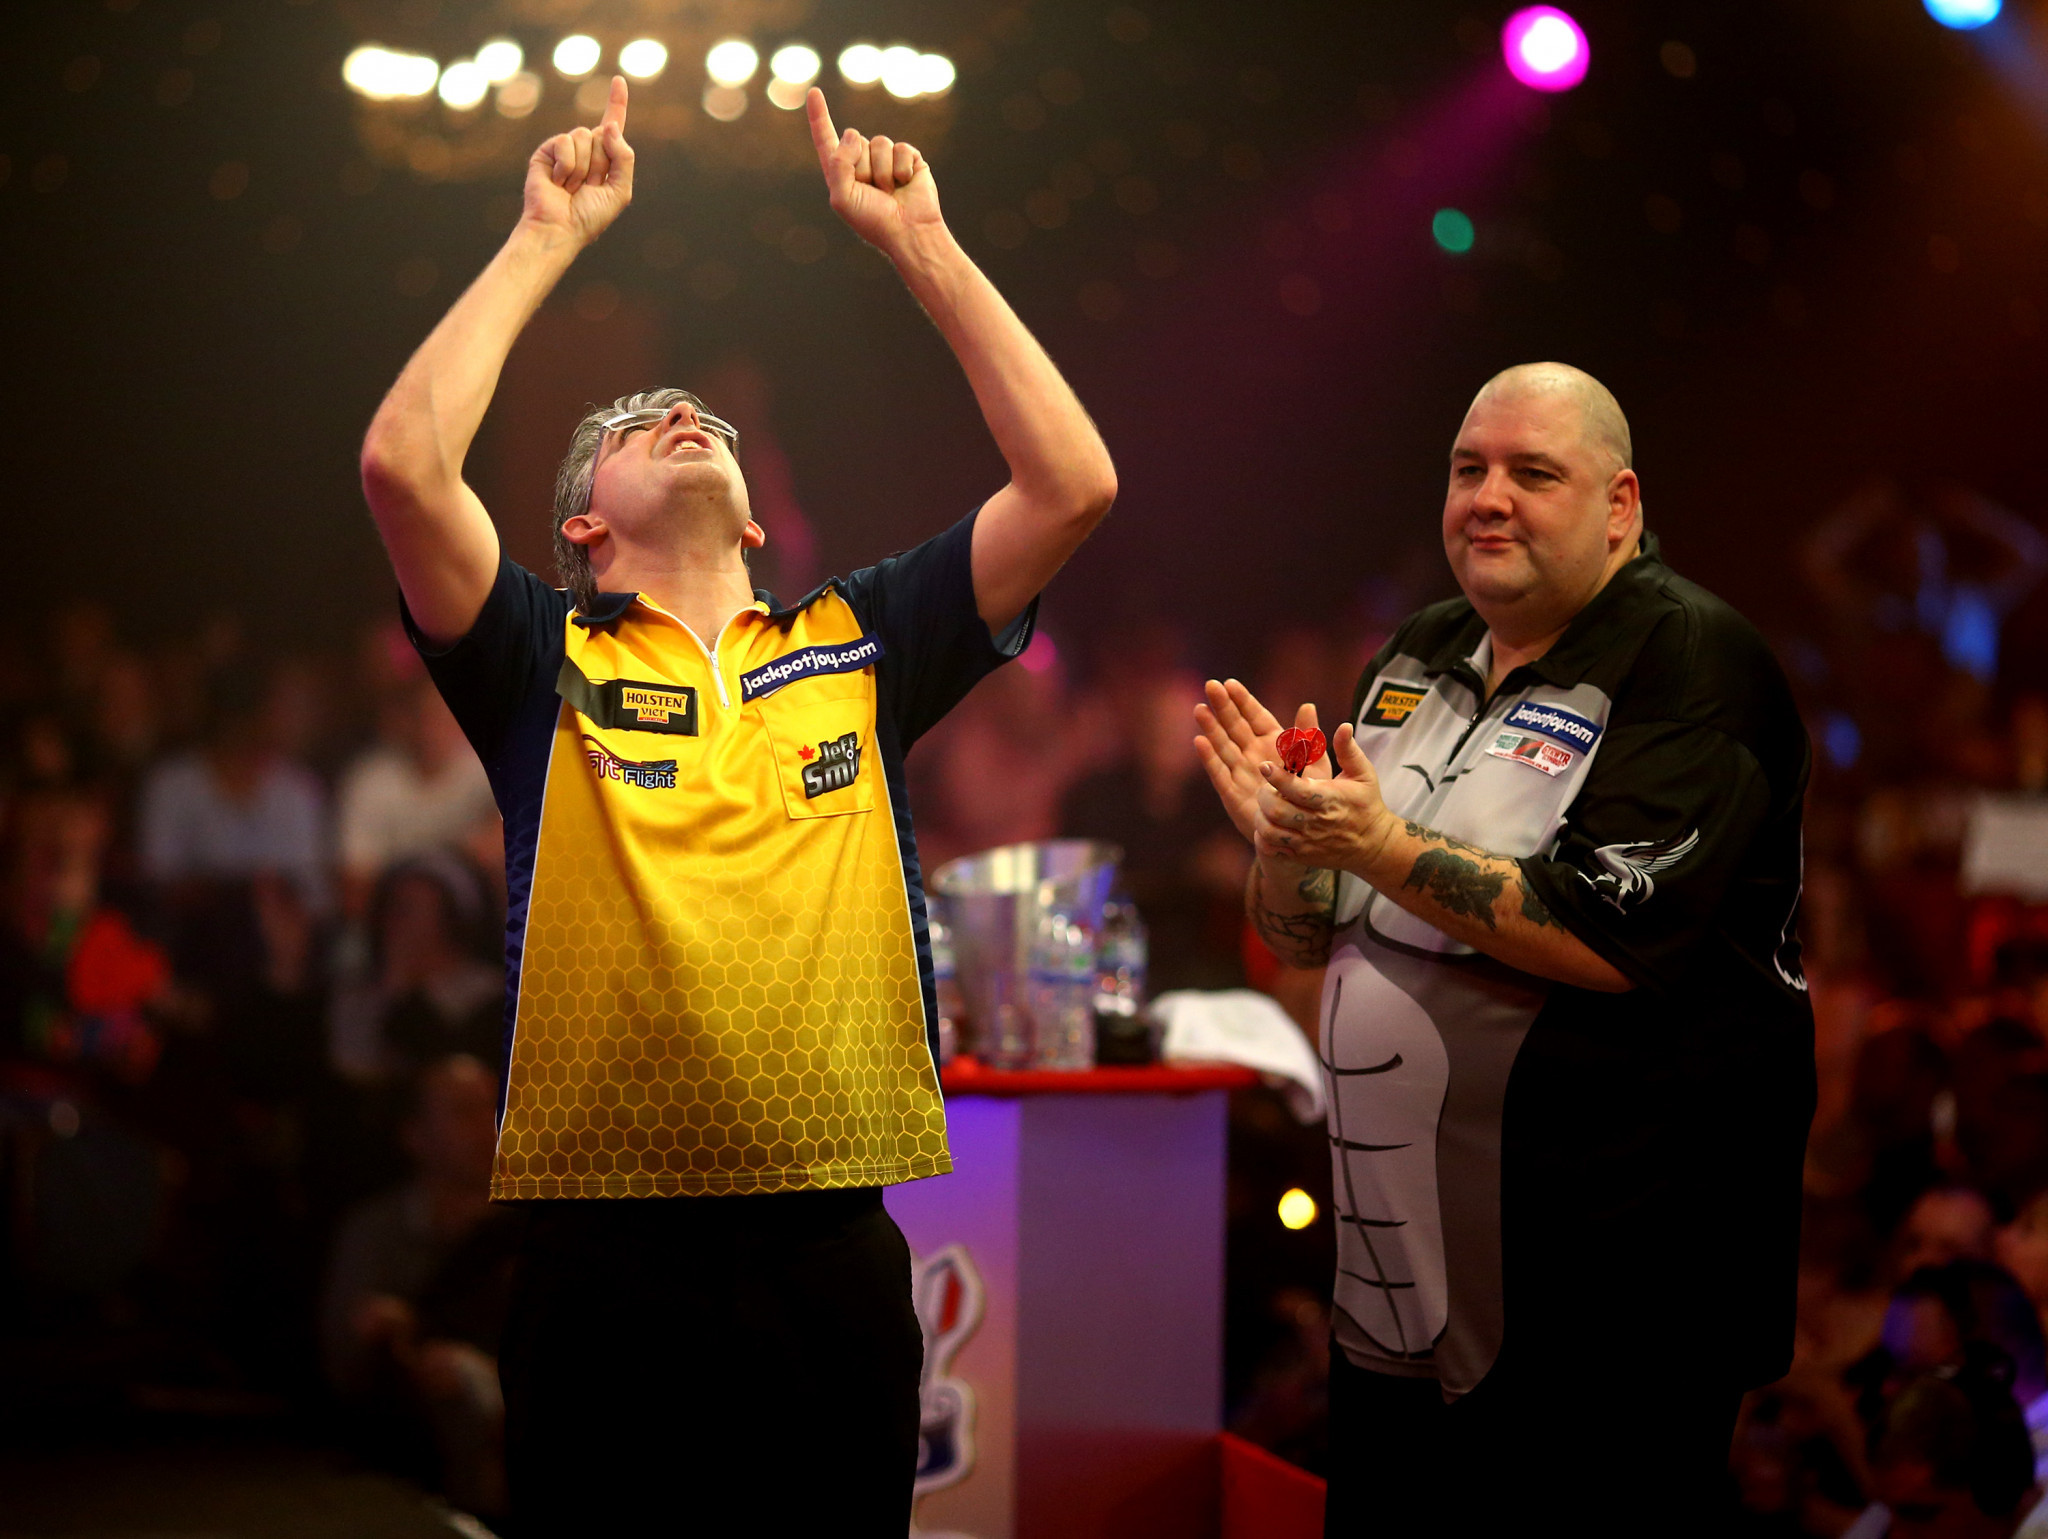 The way it was - Jeff Smith of Canada celebrates winning his quarter final match against Robbie Green of England during the BDO World Championships of 2014 at their old venue of the Lakeside Country Club ©Getty Images